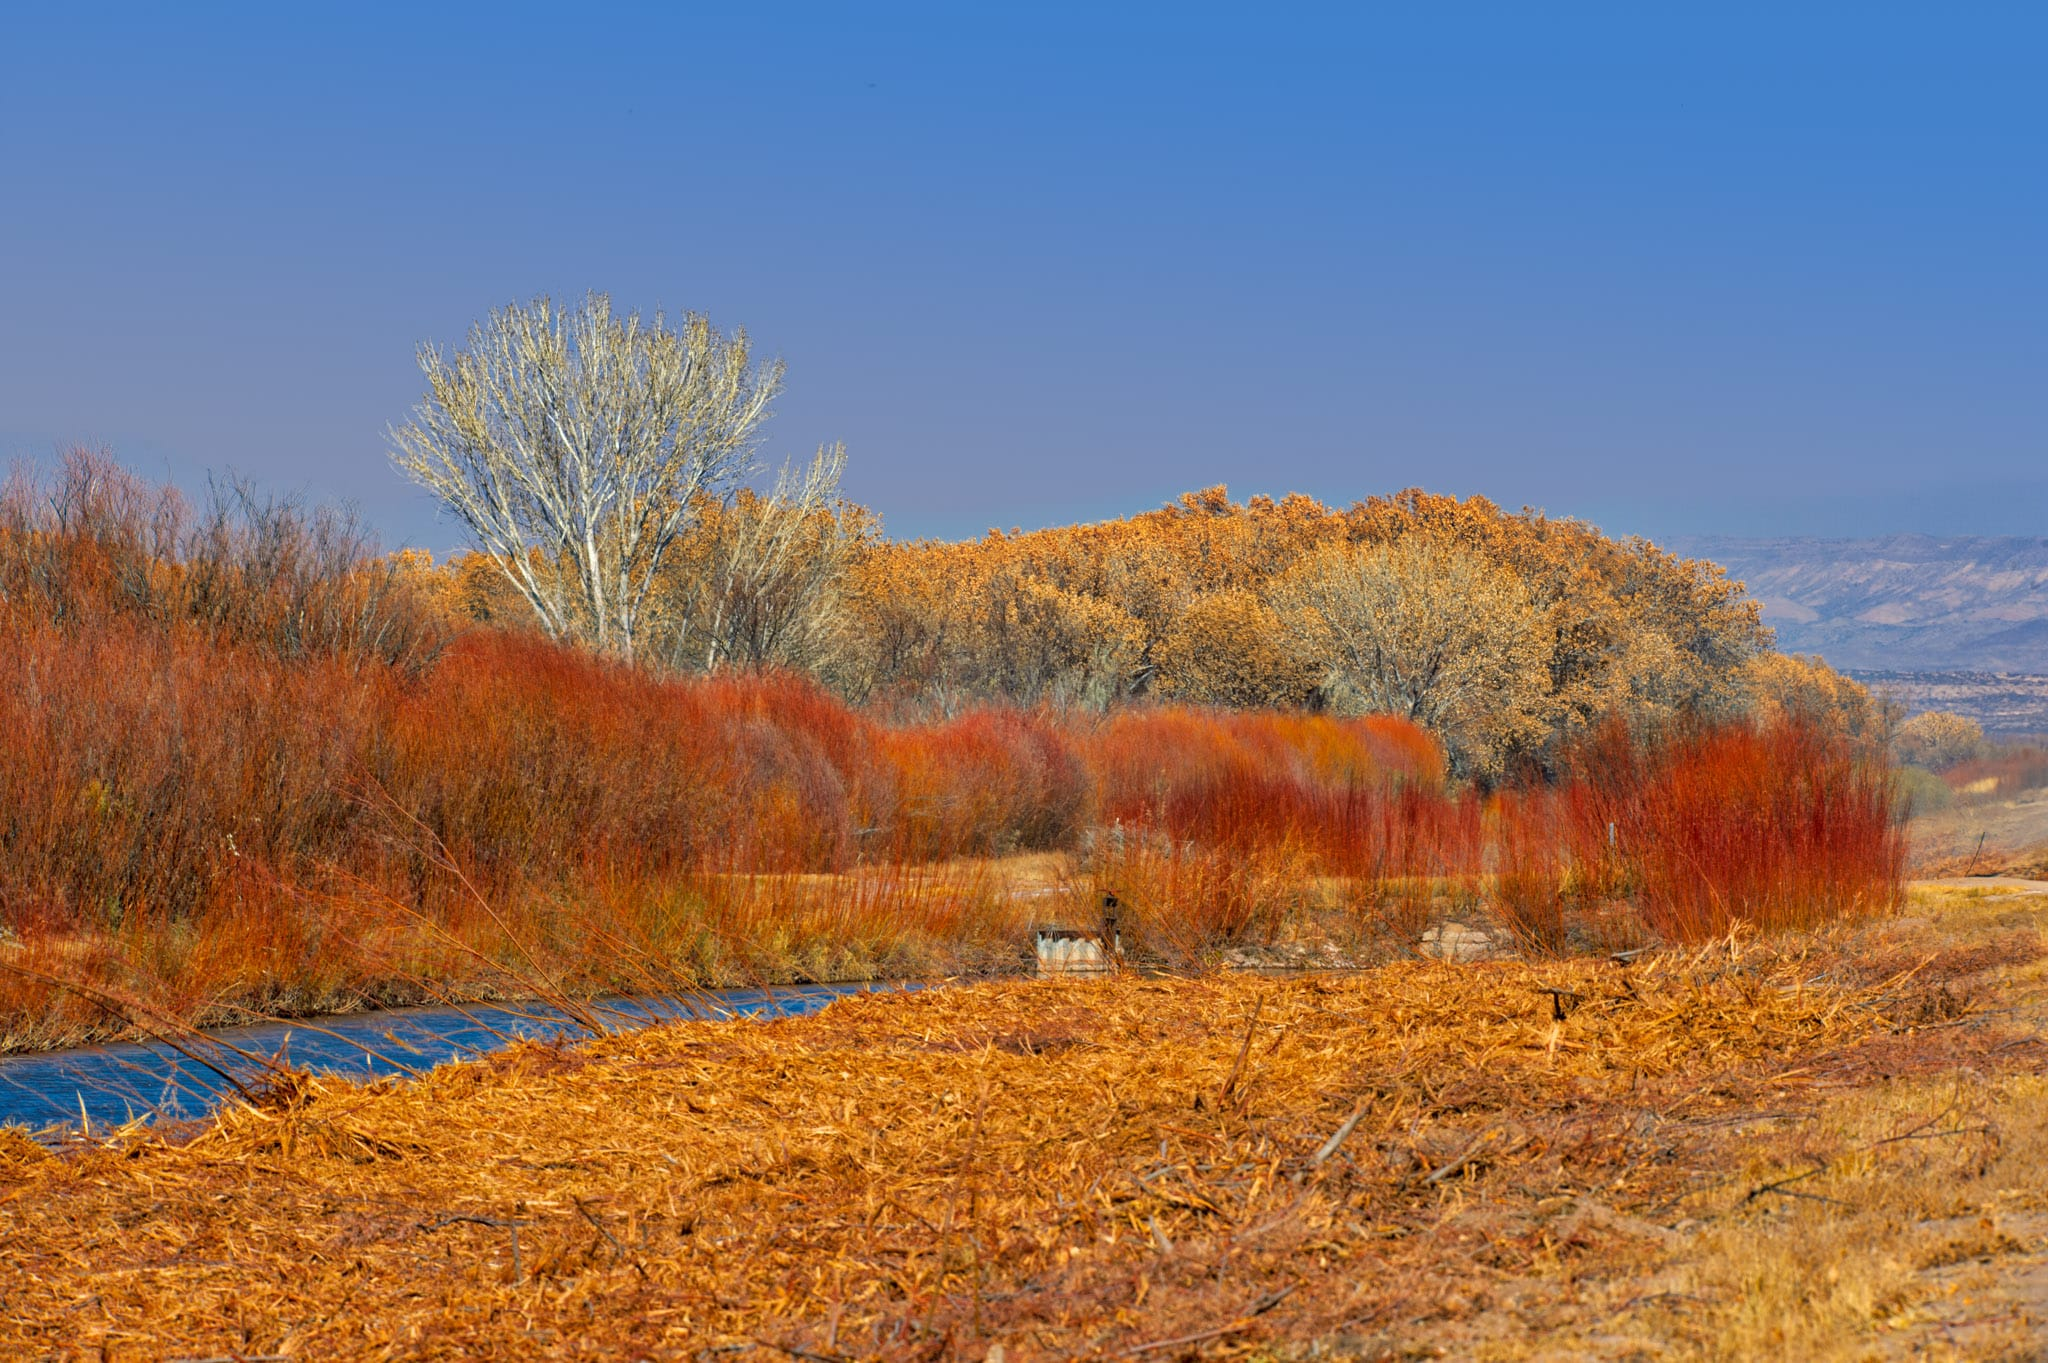 Goodings and coyote willows glow red and orange along the waterways in Bosque del Apache National Wildlife Refuge near Socorro, New Mexico.